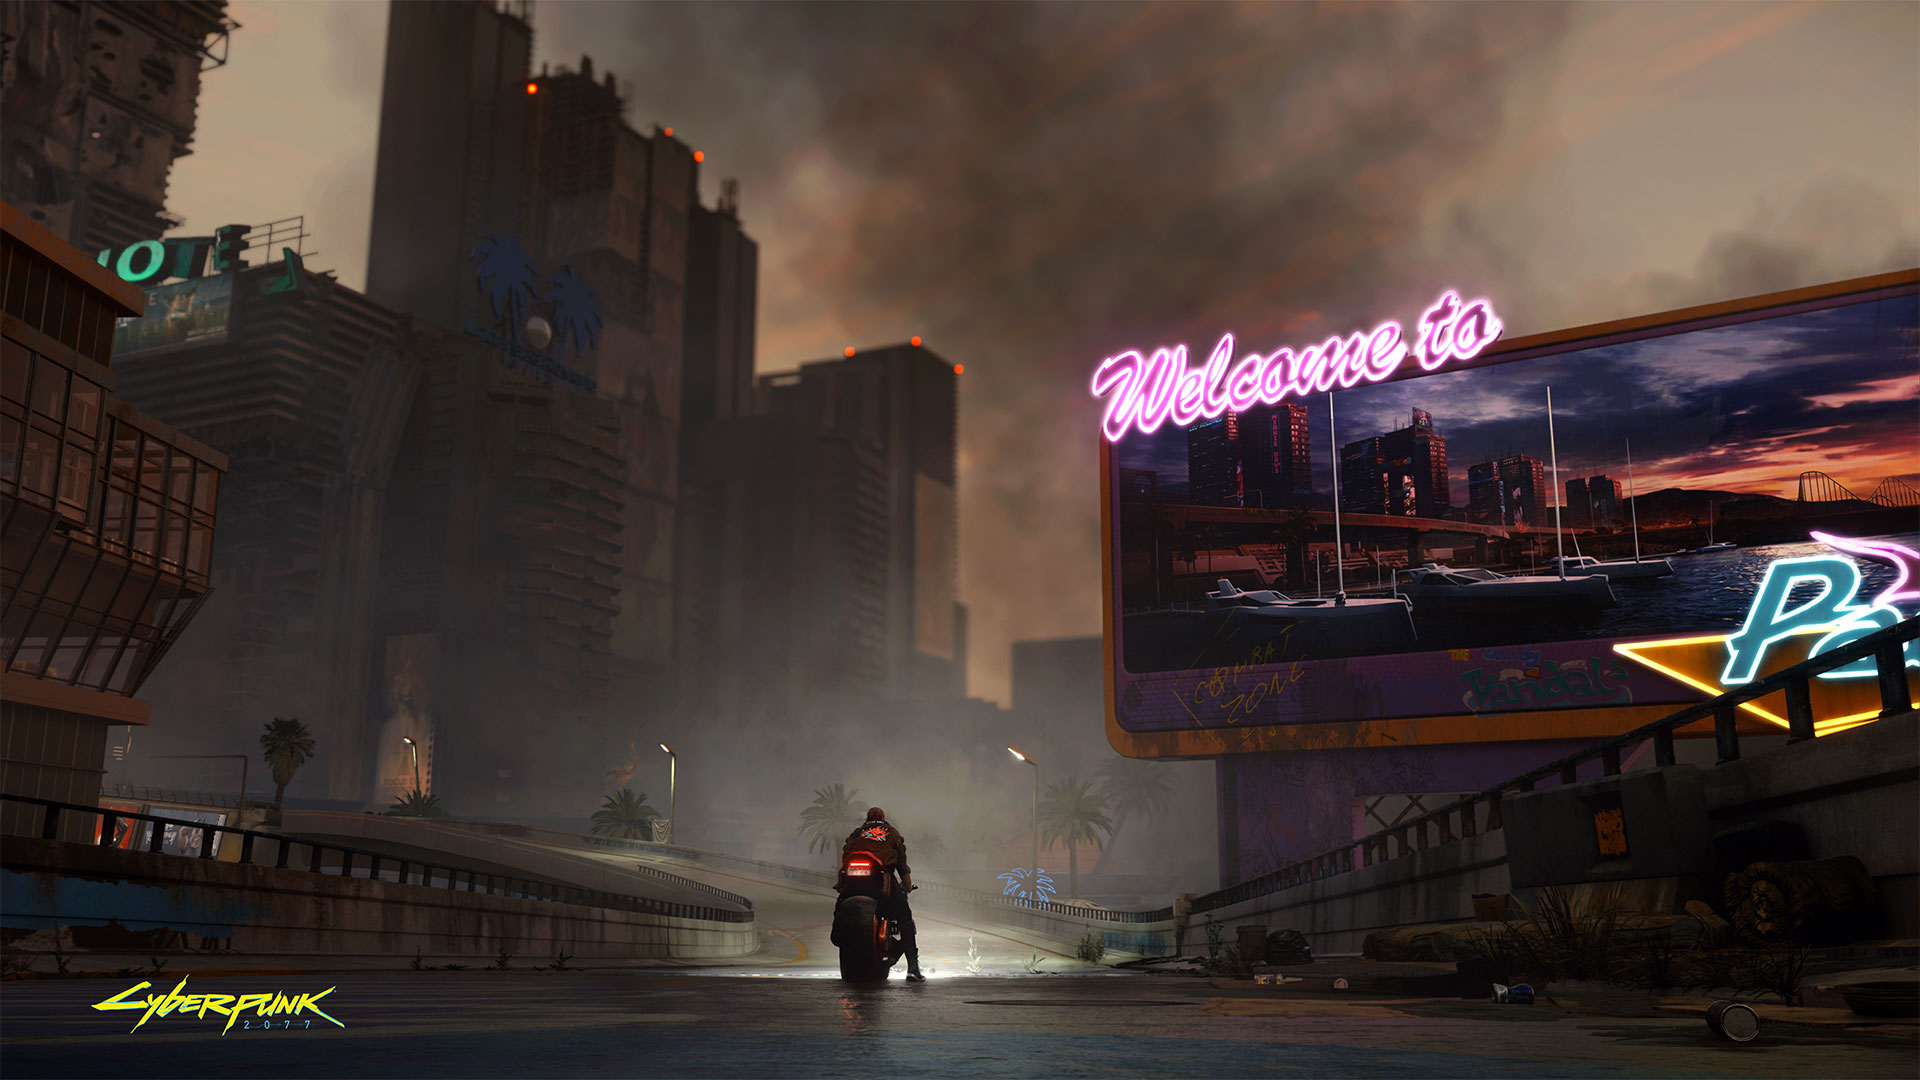 Why Cyberpunk 2077 Is My Most Anticipated Game of E3 2019